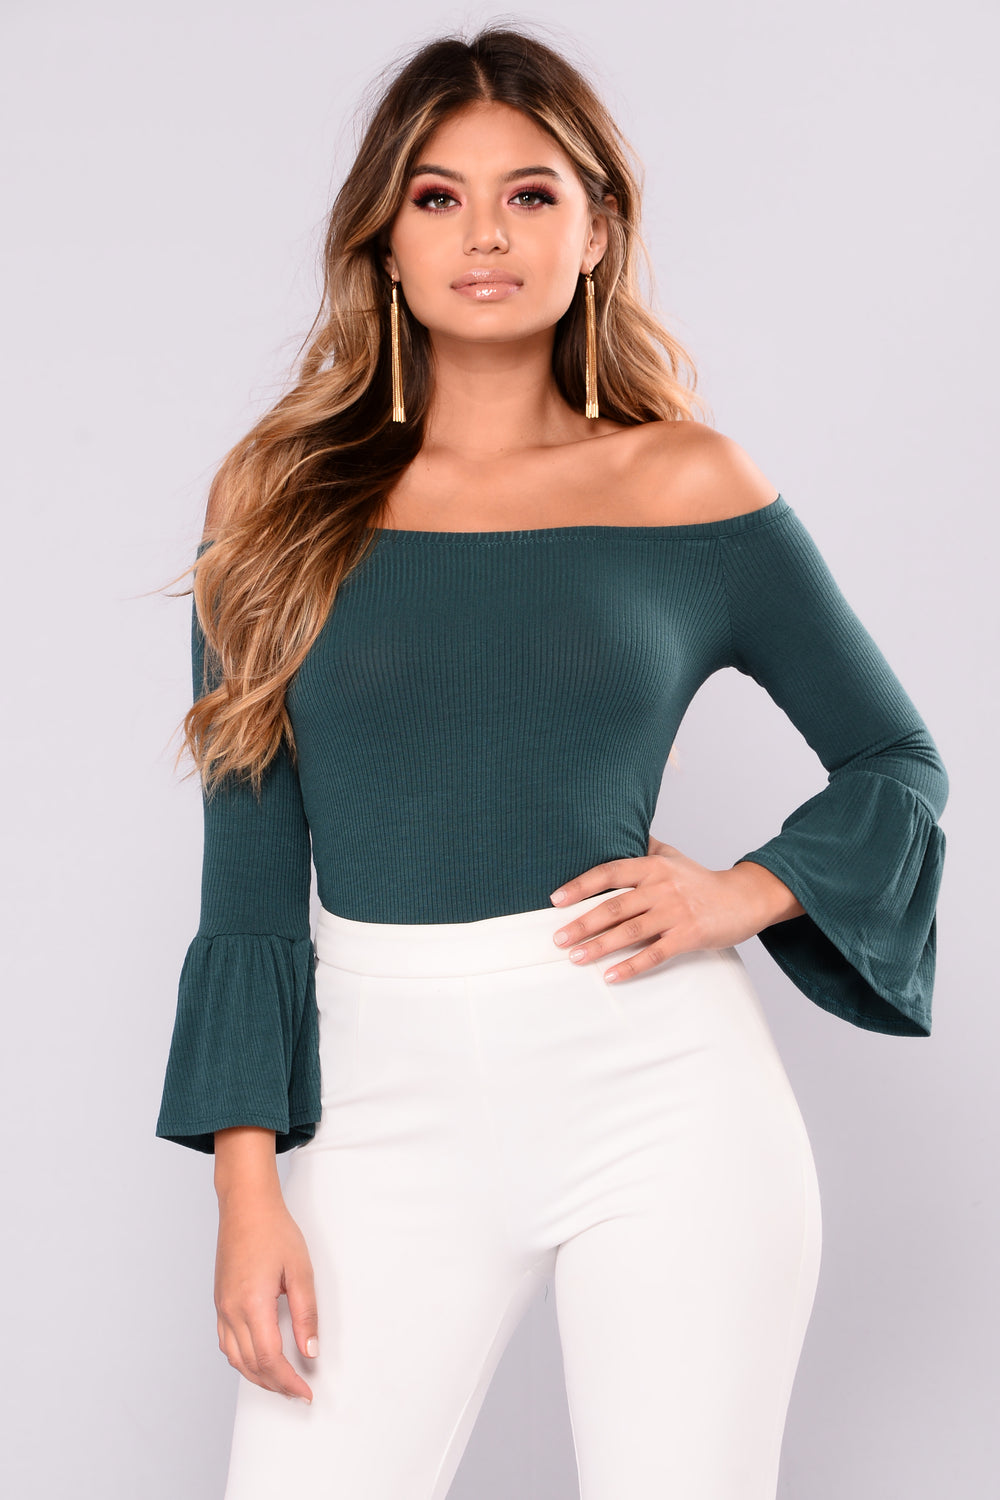 The Right Timing Bell Sleeve Top - Hunter Green